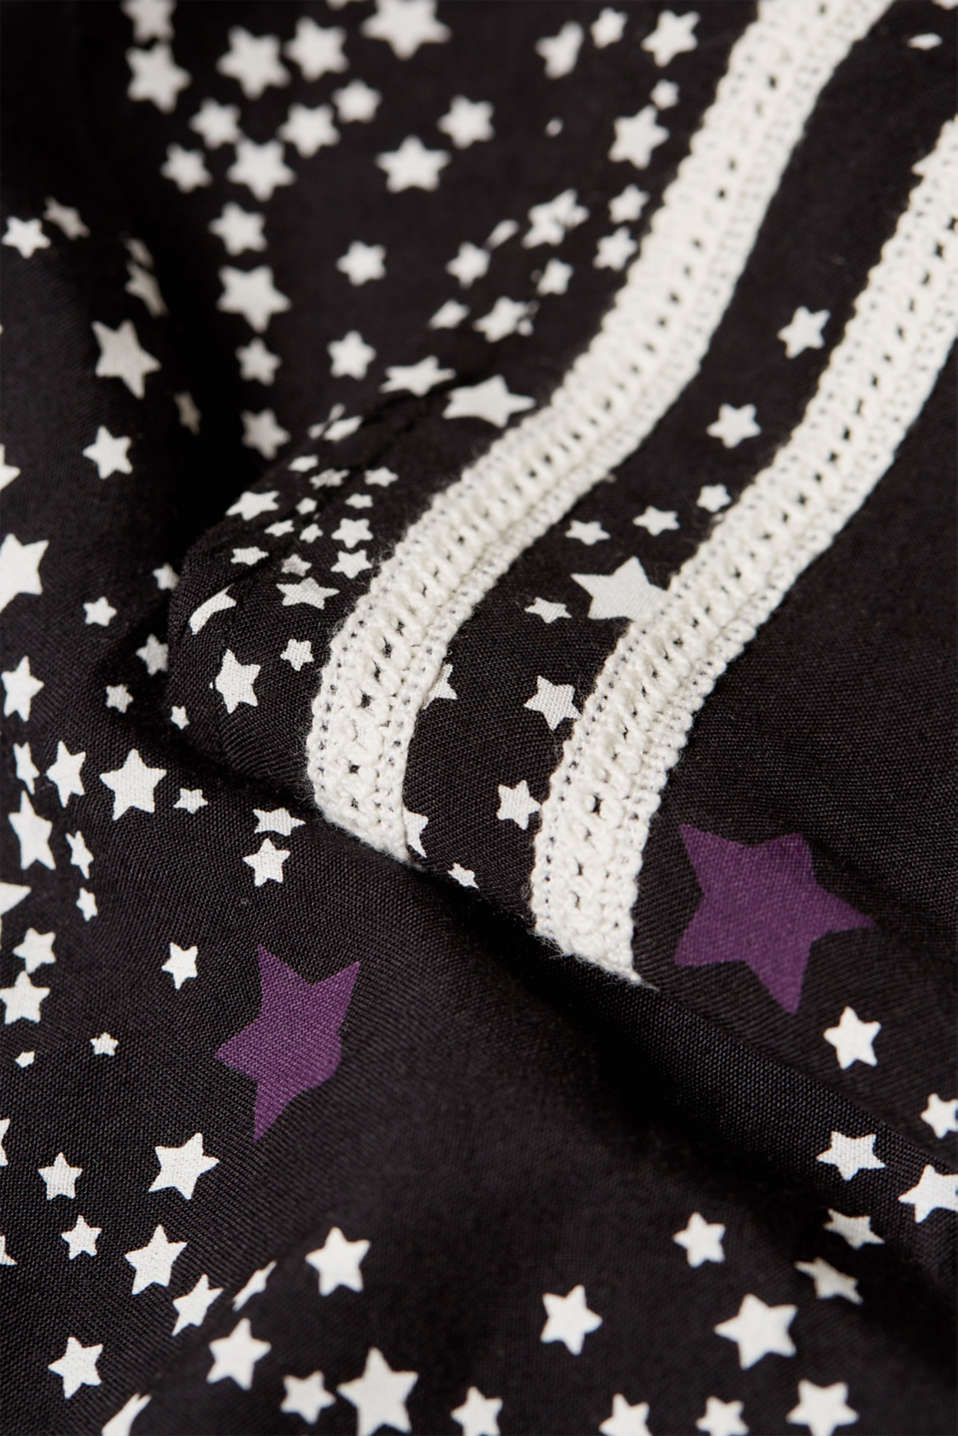 Printed blouse with crocheted lace trims, LCBLACK, detail image number 4